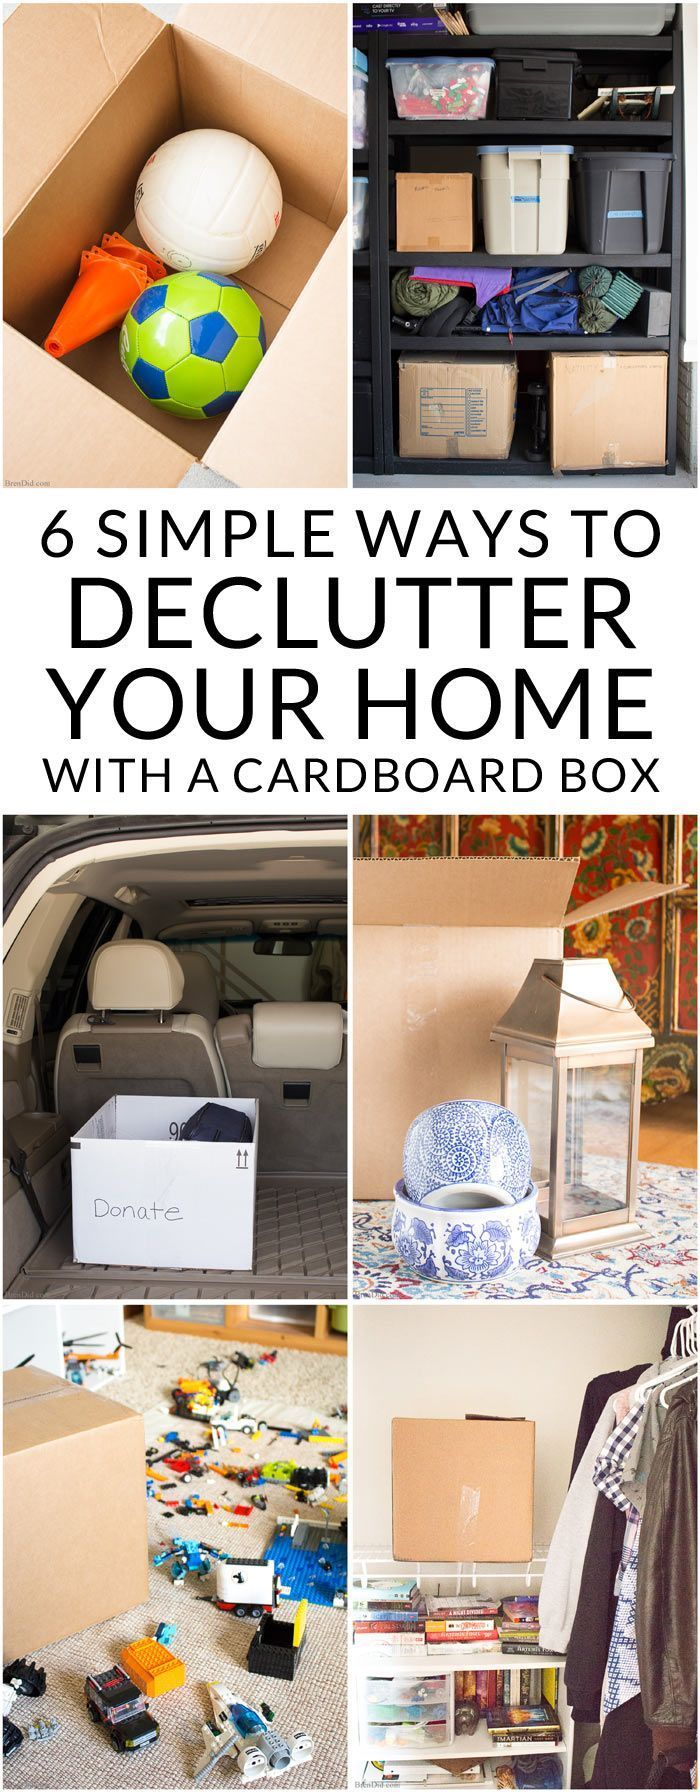 Need to declutter and organize? These easy tips use nothing but a cardboard box to keep your home organized and clutter free. 6 expert tips for decluttering your home from a military spouse who has moved 8 times!